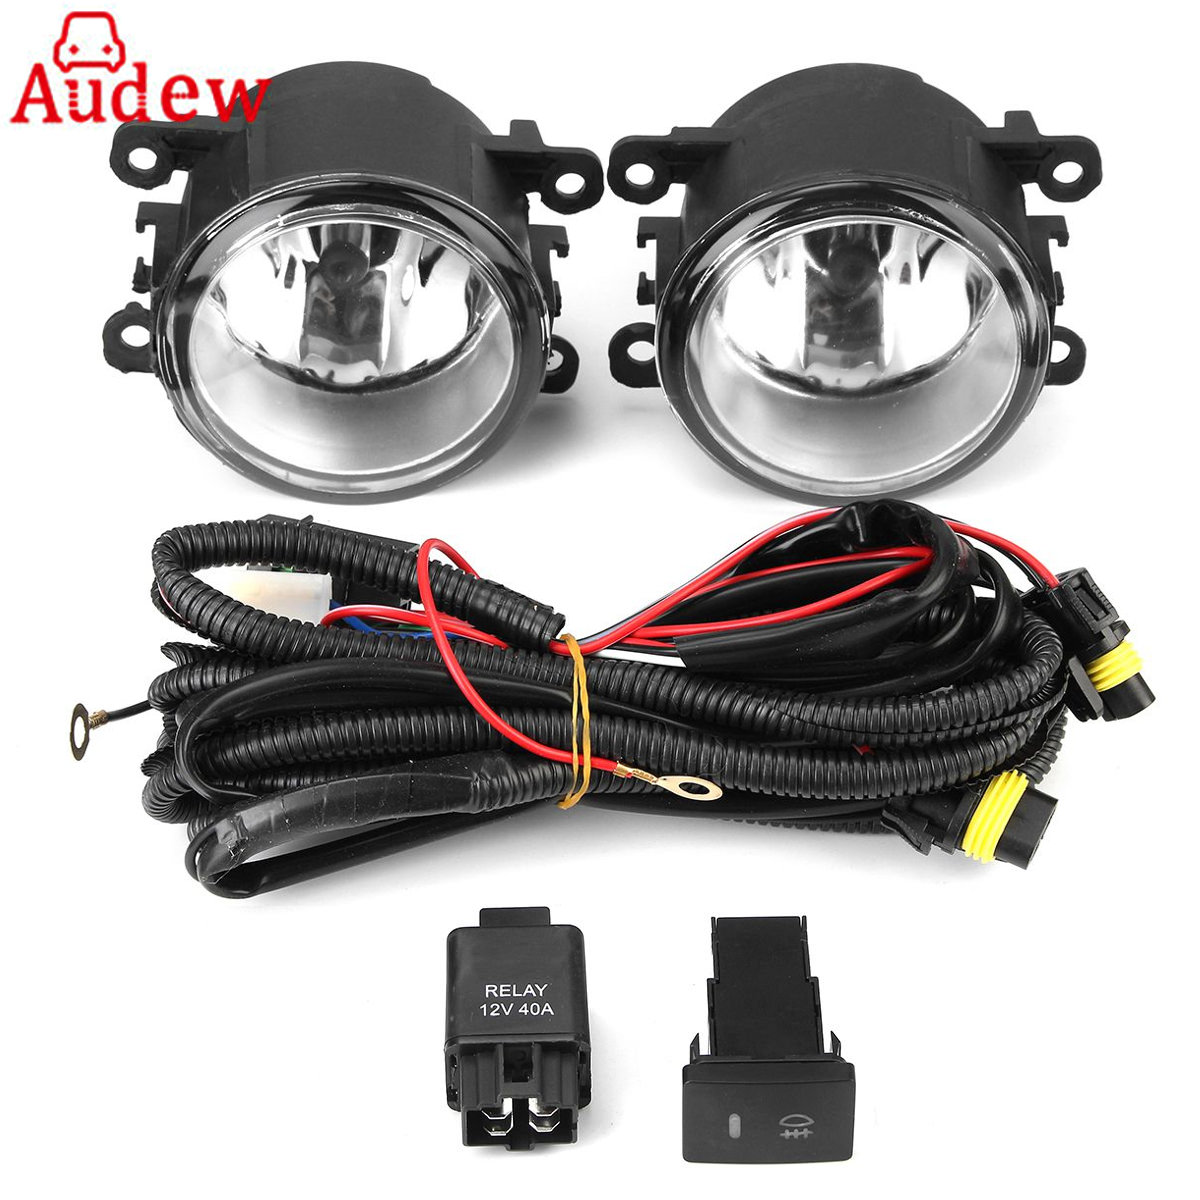 pair front fog light clear lens with wiring kit for crosstrek wrx wrx sti xv 84501fj000 in car light assembly from automobiles motorcycles on  [ 1200 x 1200 Pixel ]